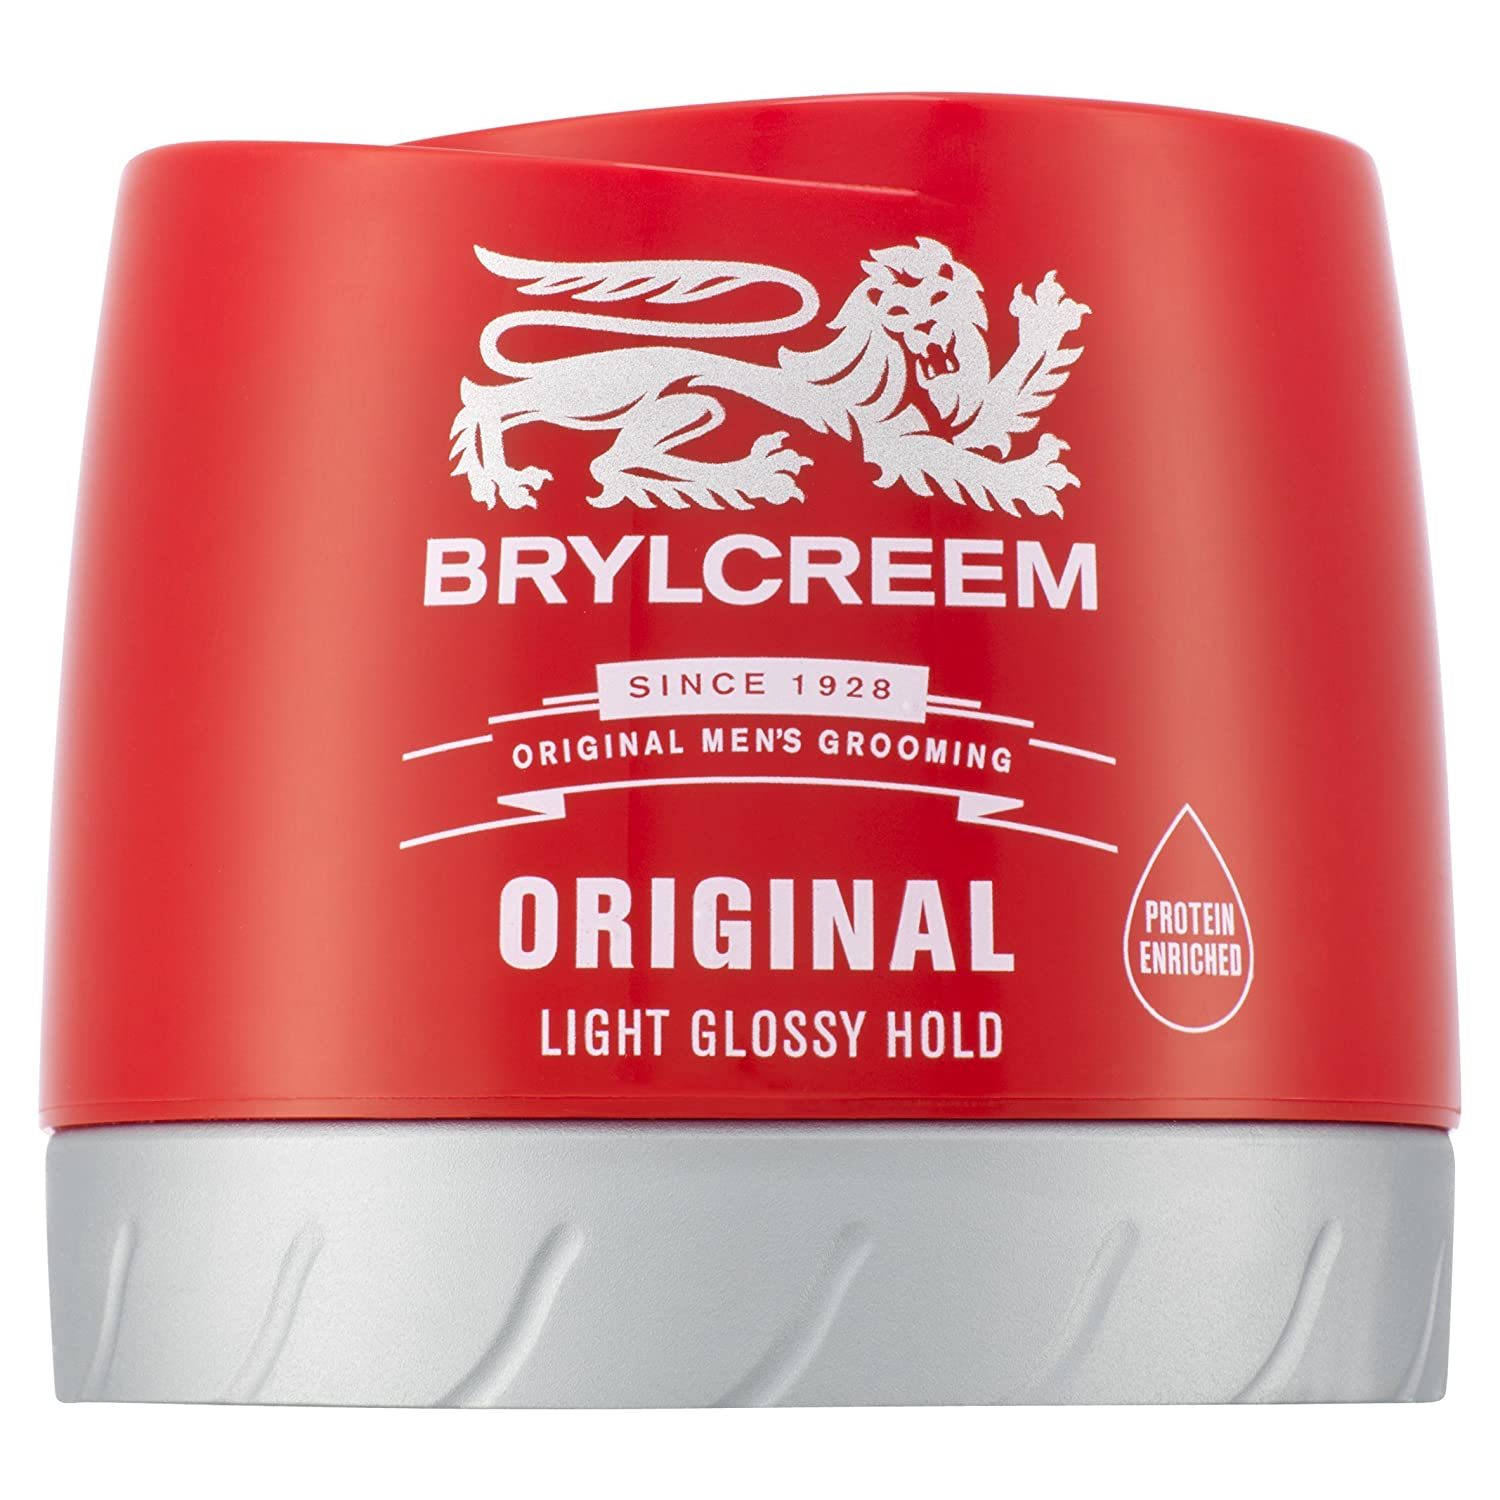 Brylcreem Protein Enriched Light Glossy Hold 150ml Unilever 8811738